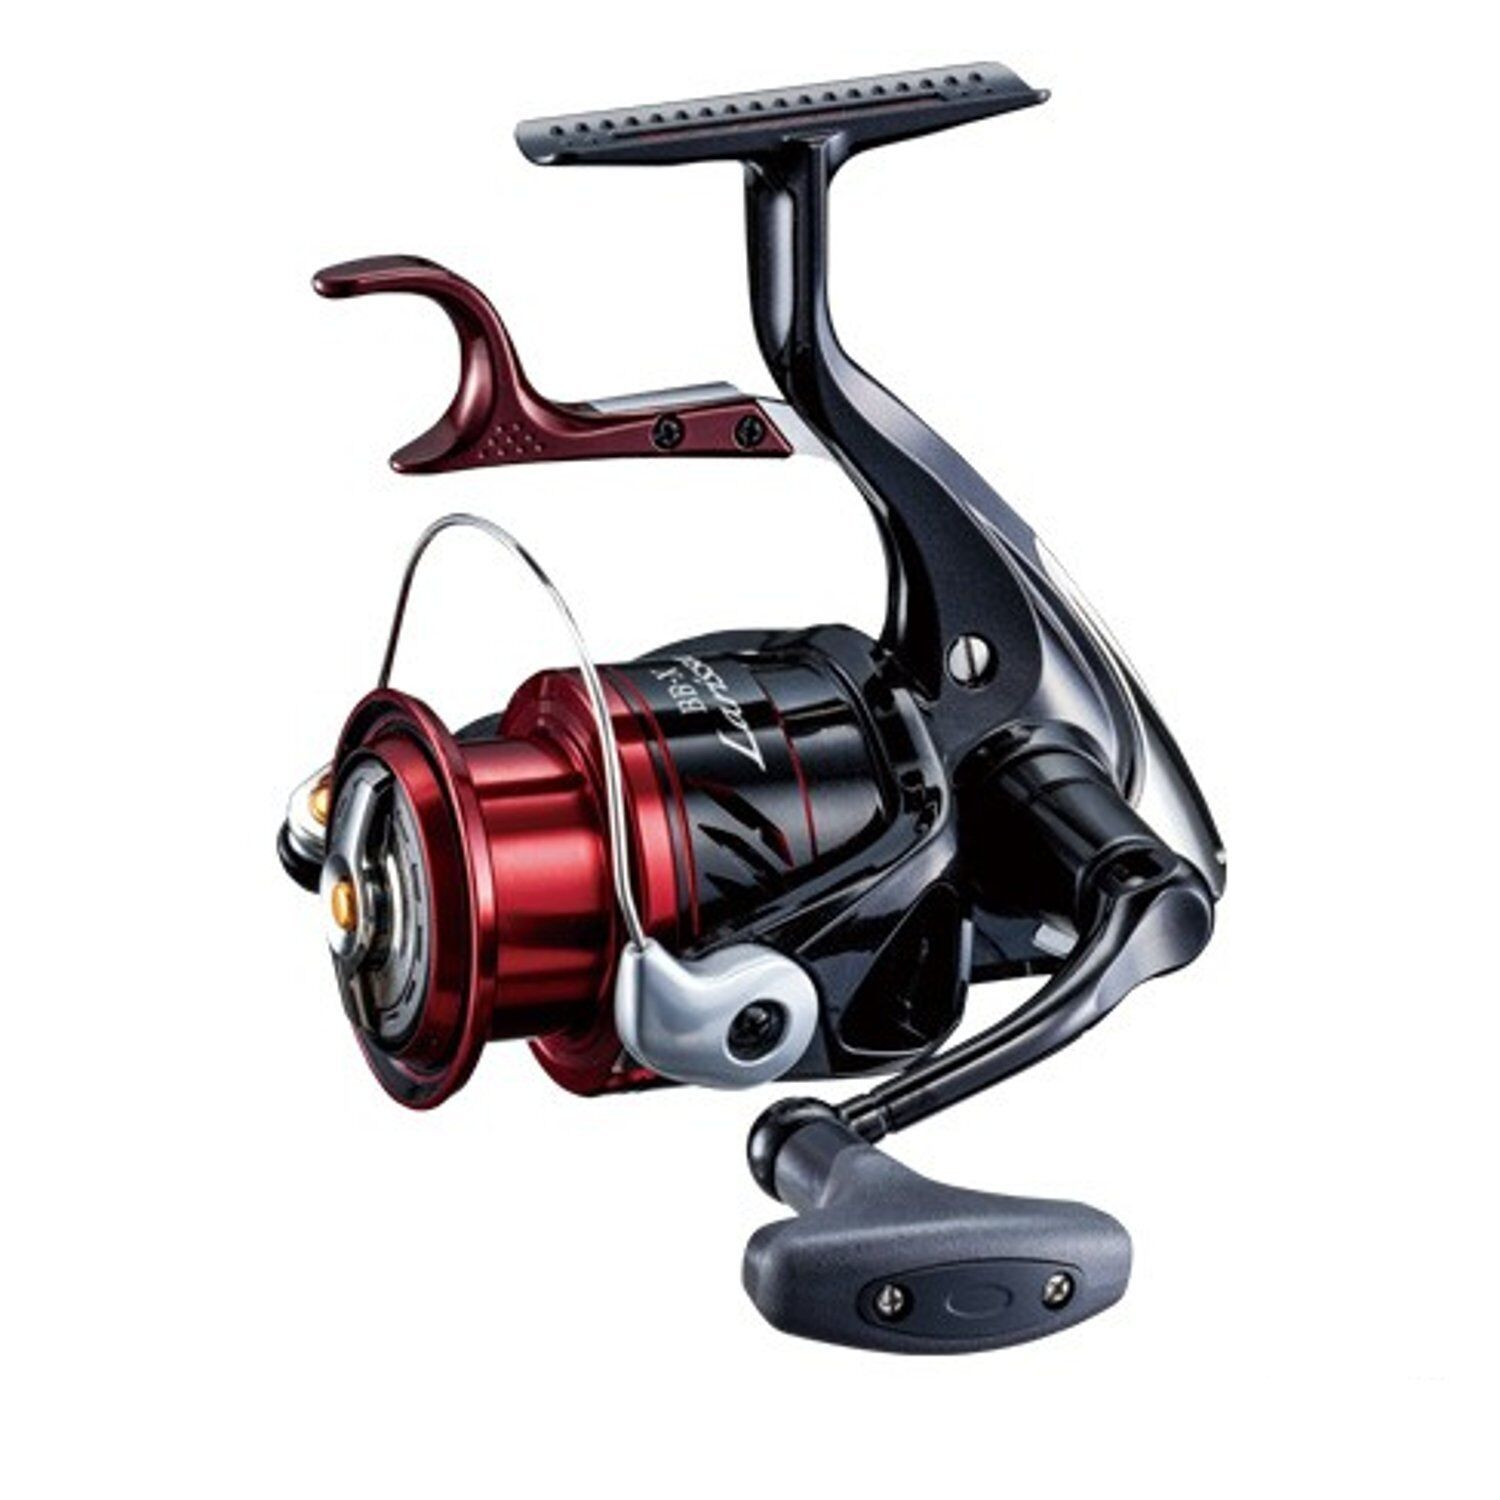 Shimano Spinning Reel16 BB-X LARISSA 2500DHG from japan【Brand New in Box 】